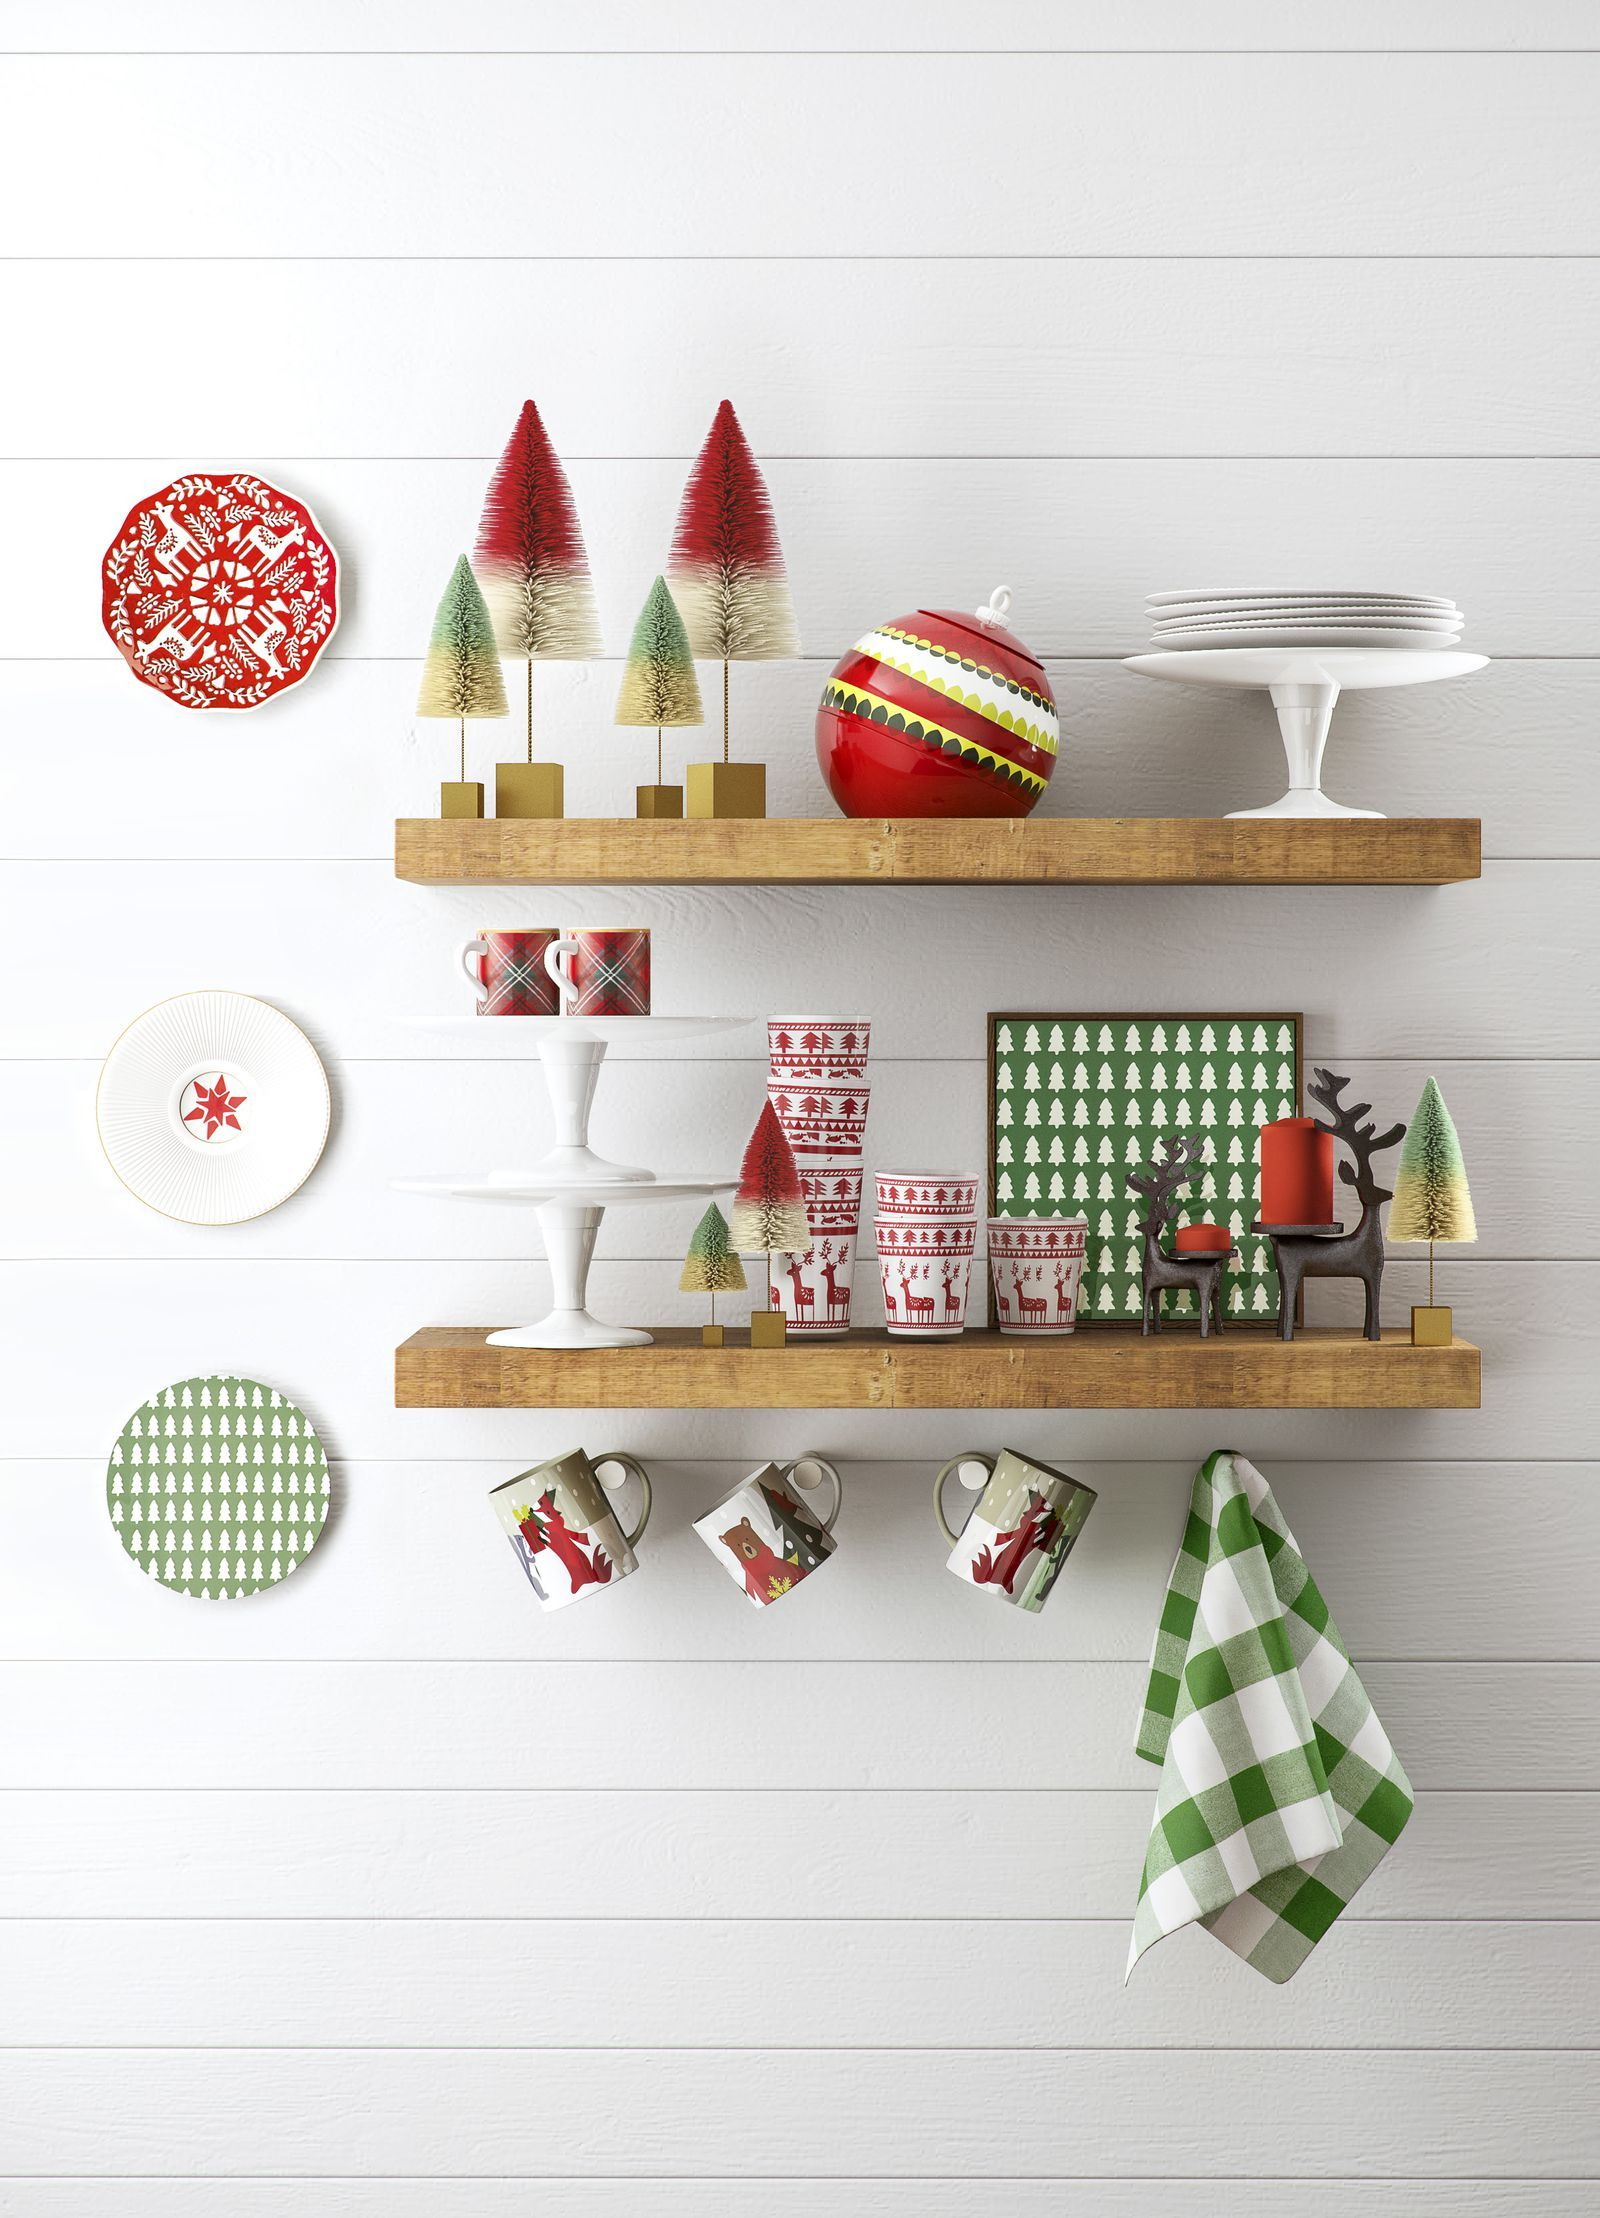 This Online Decorating Service Is Solving All Our December Design Woes Holiday Crafts Diy Easy Christmas Crafts Christmas Crafts